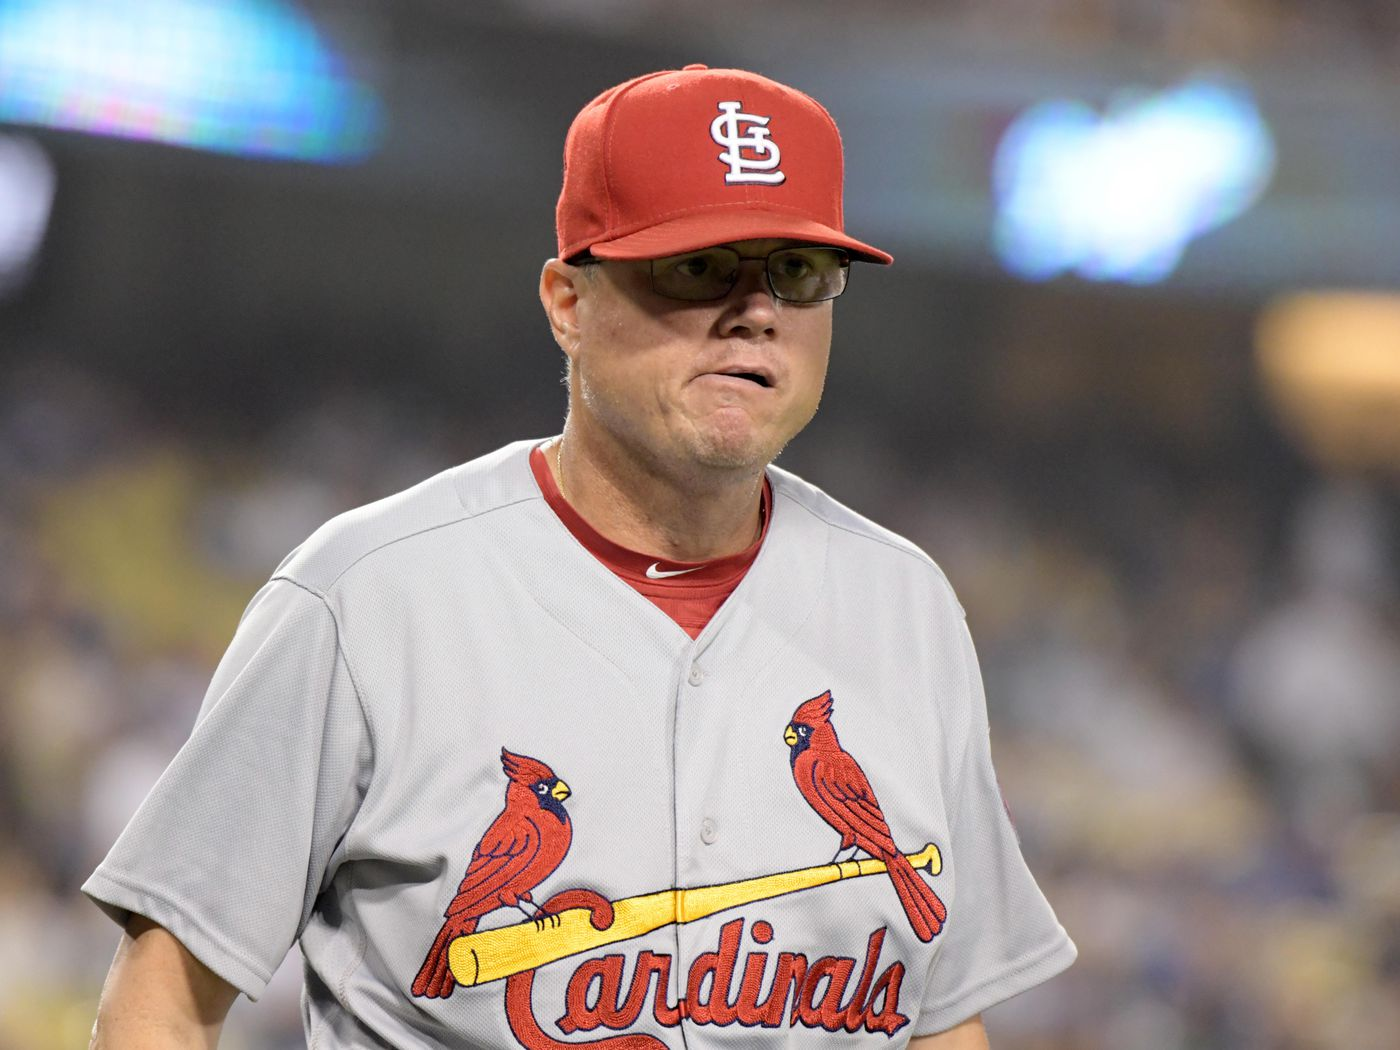 The Cardinal Way, Bryant Back In The Lineup, and Top Prospect Adell Called Up